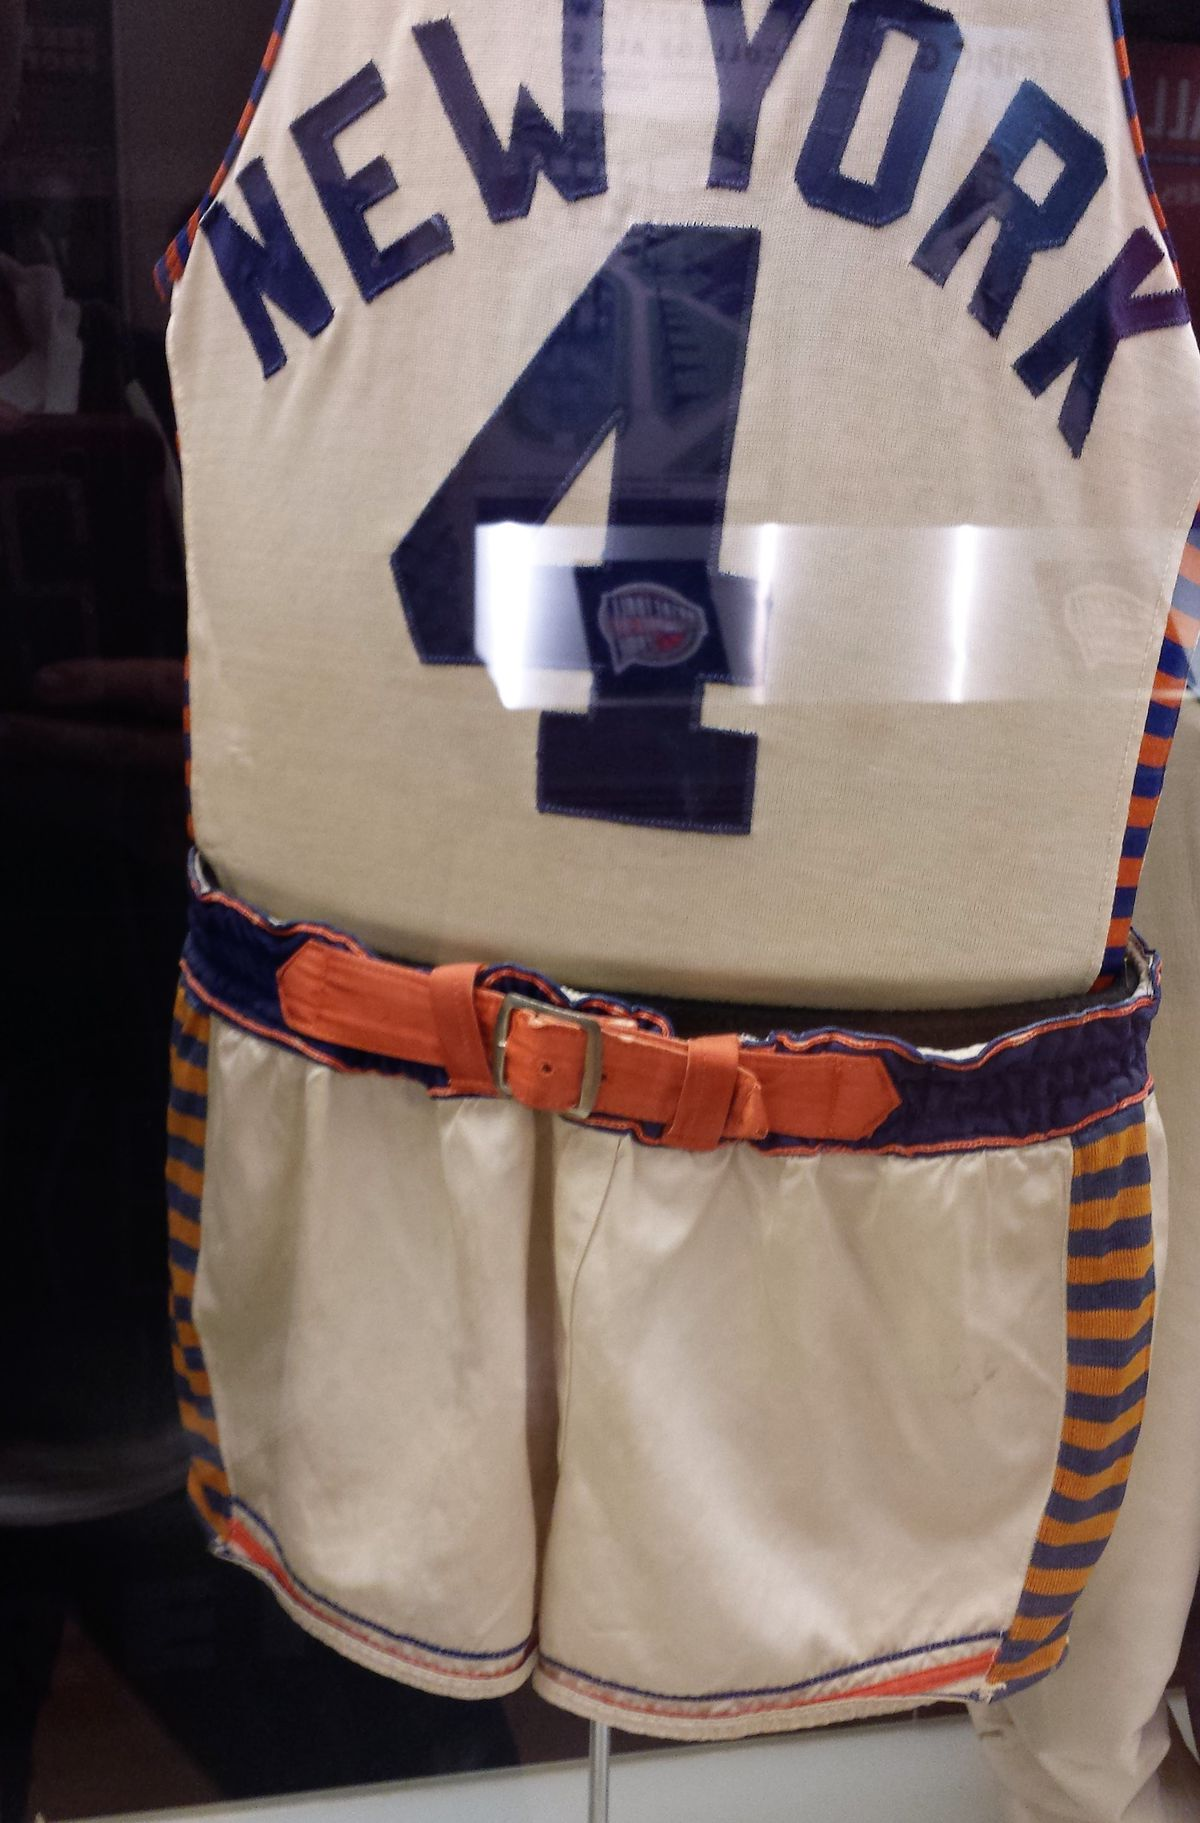 New York Knicks jersey with a sturdy belt at the waist.